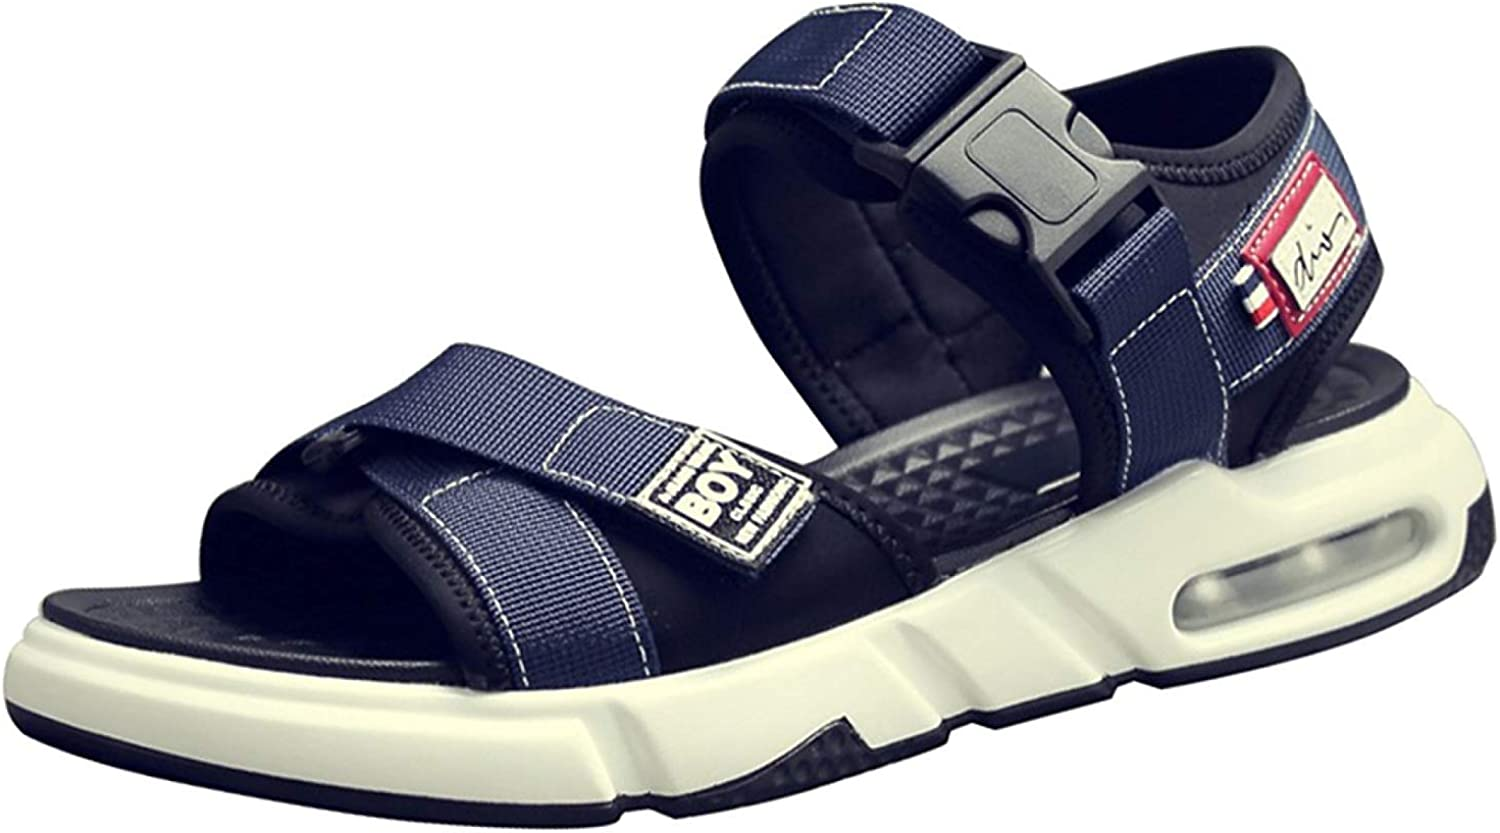 FuweiEncore Men's Casual Sandals Beach shoes Outdoor Sports shoes Slippers (color   bluee, Size   42EU)